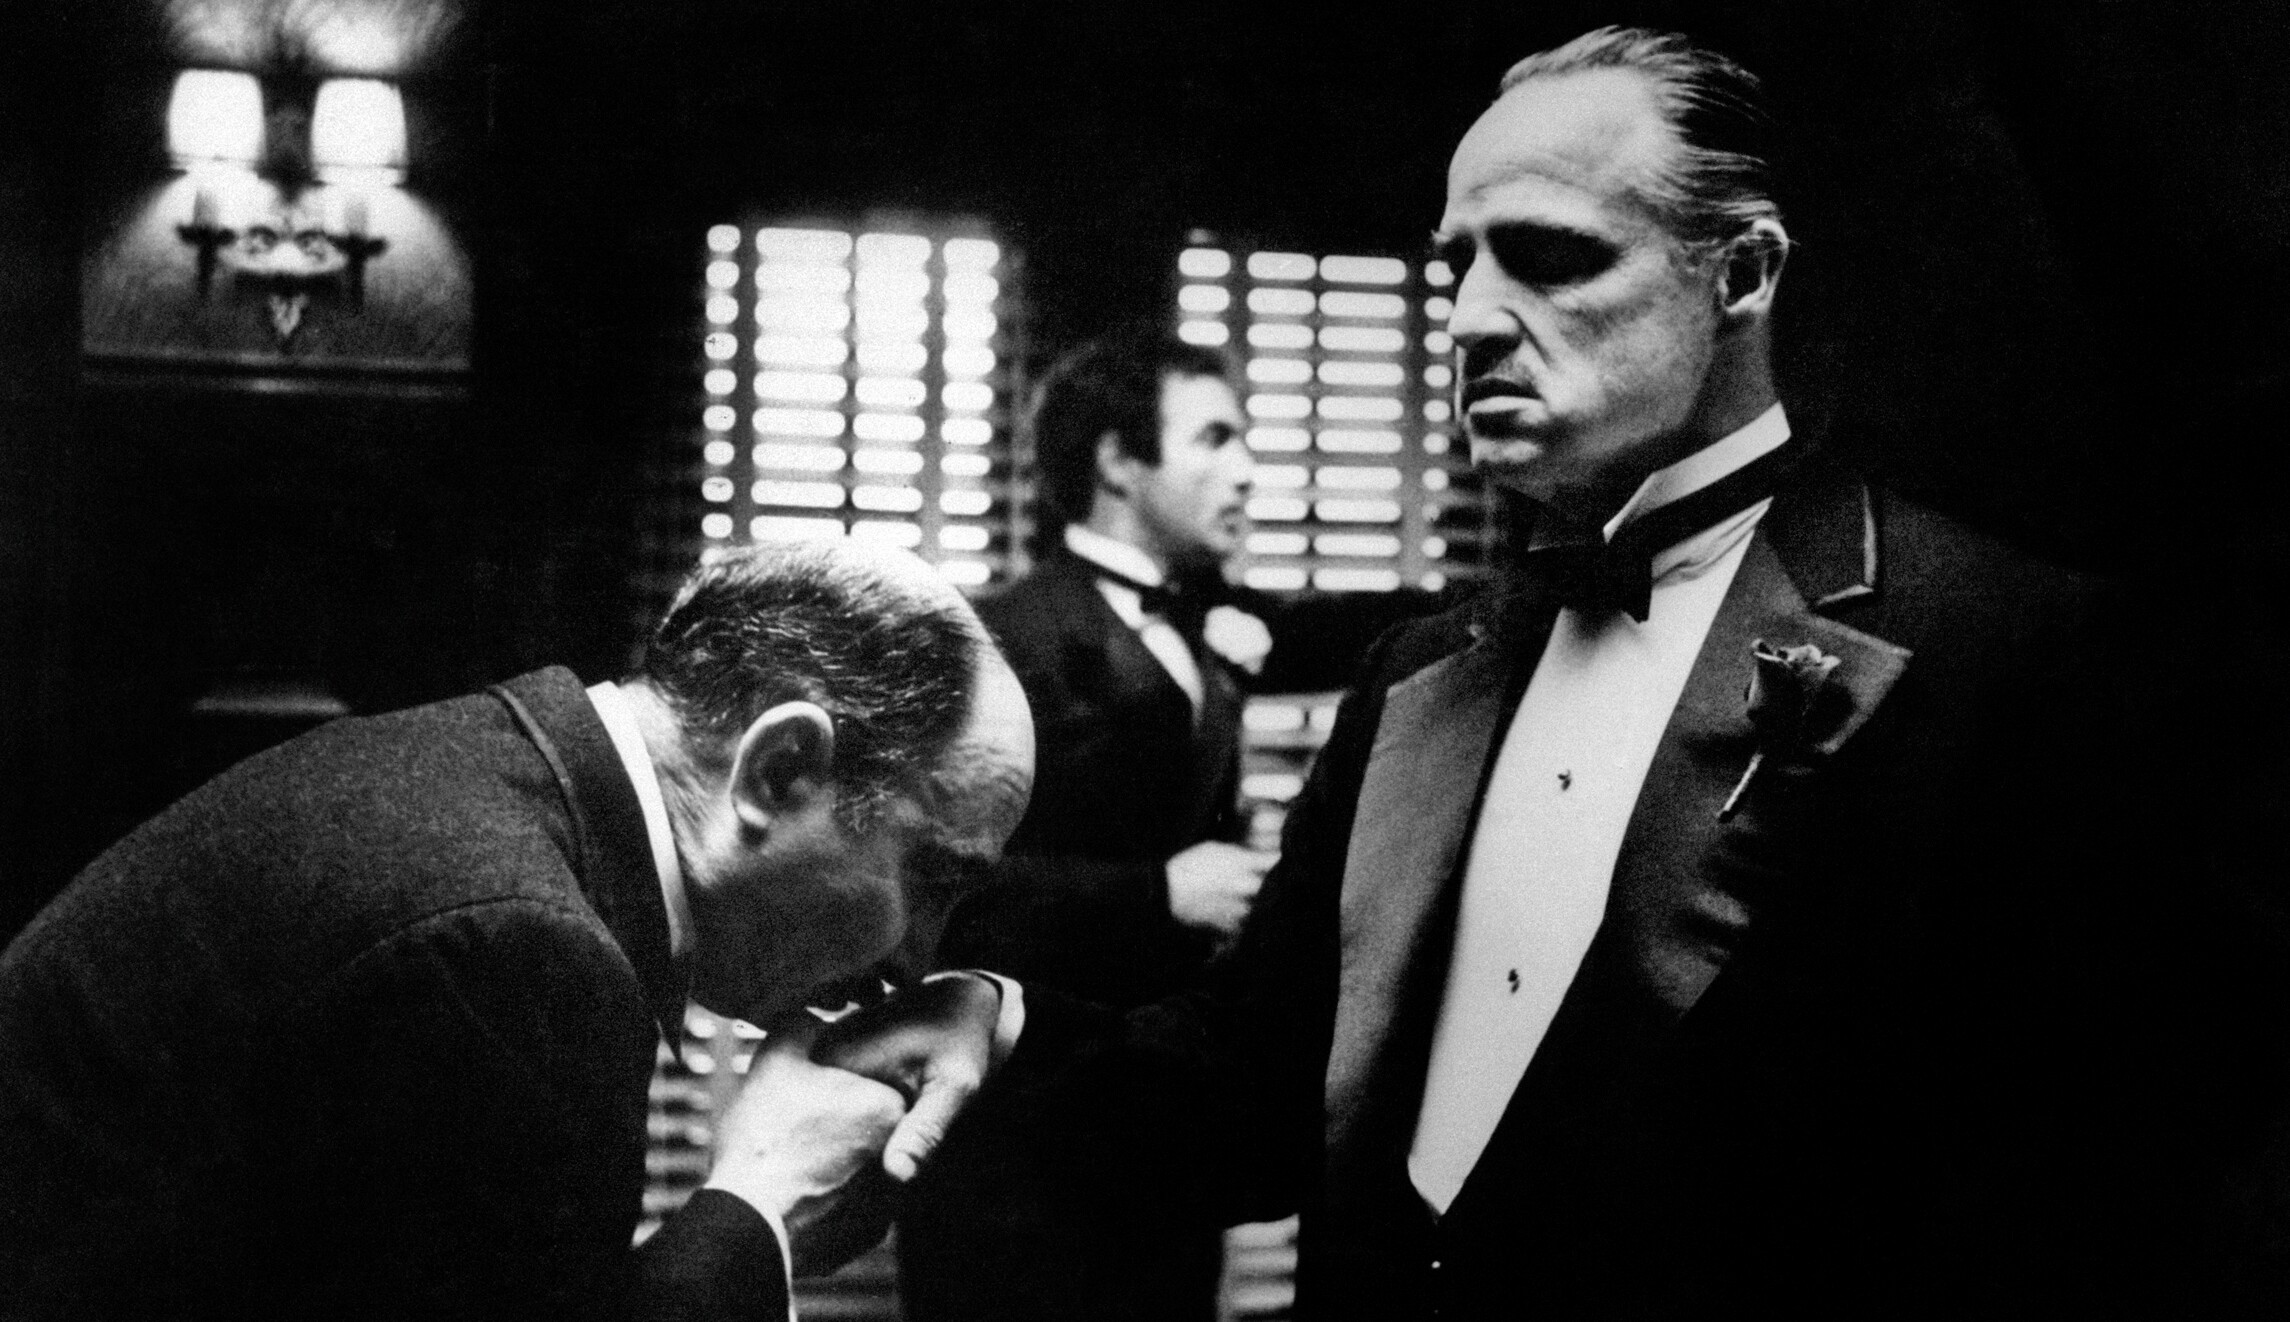 The Godfather and its godchildren